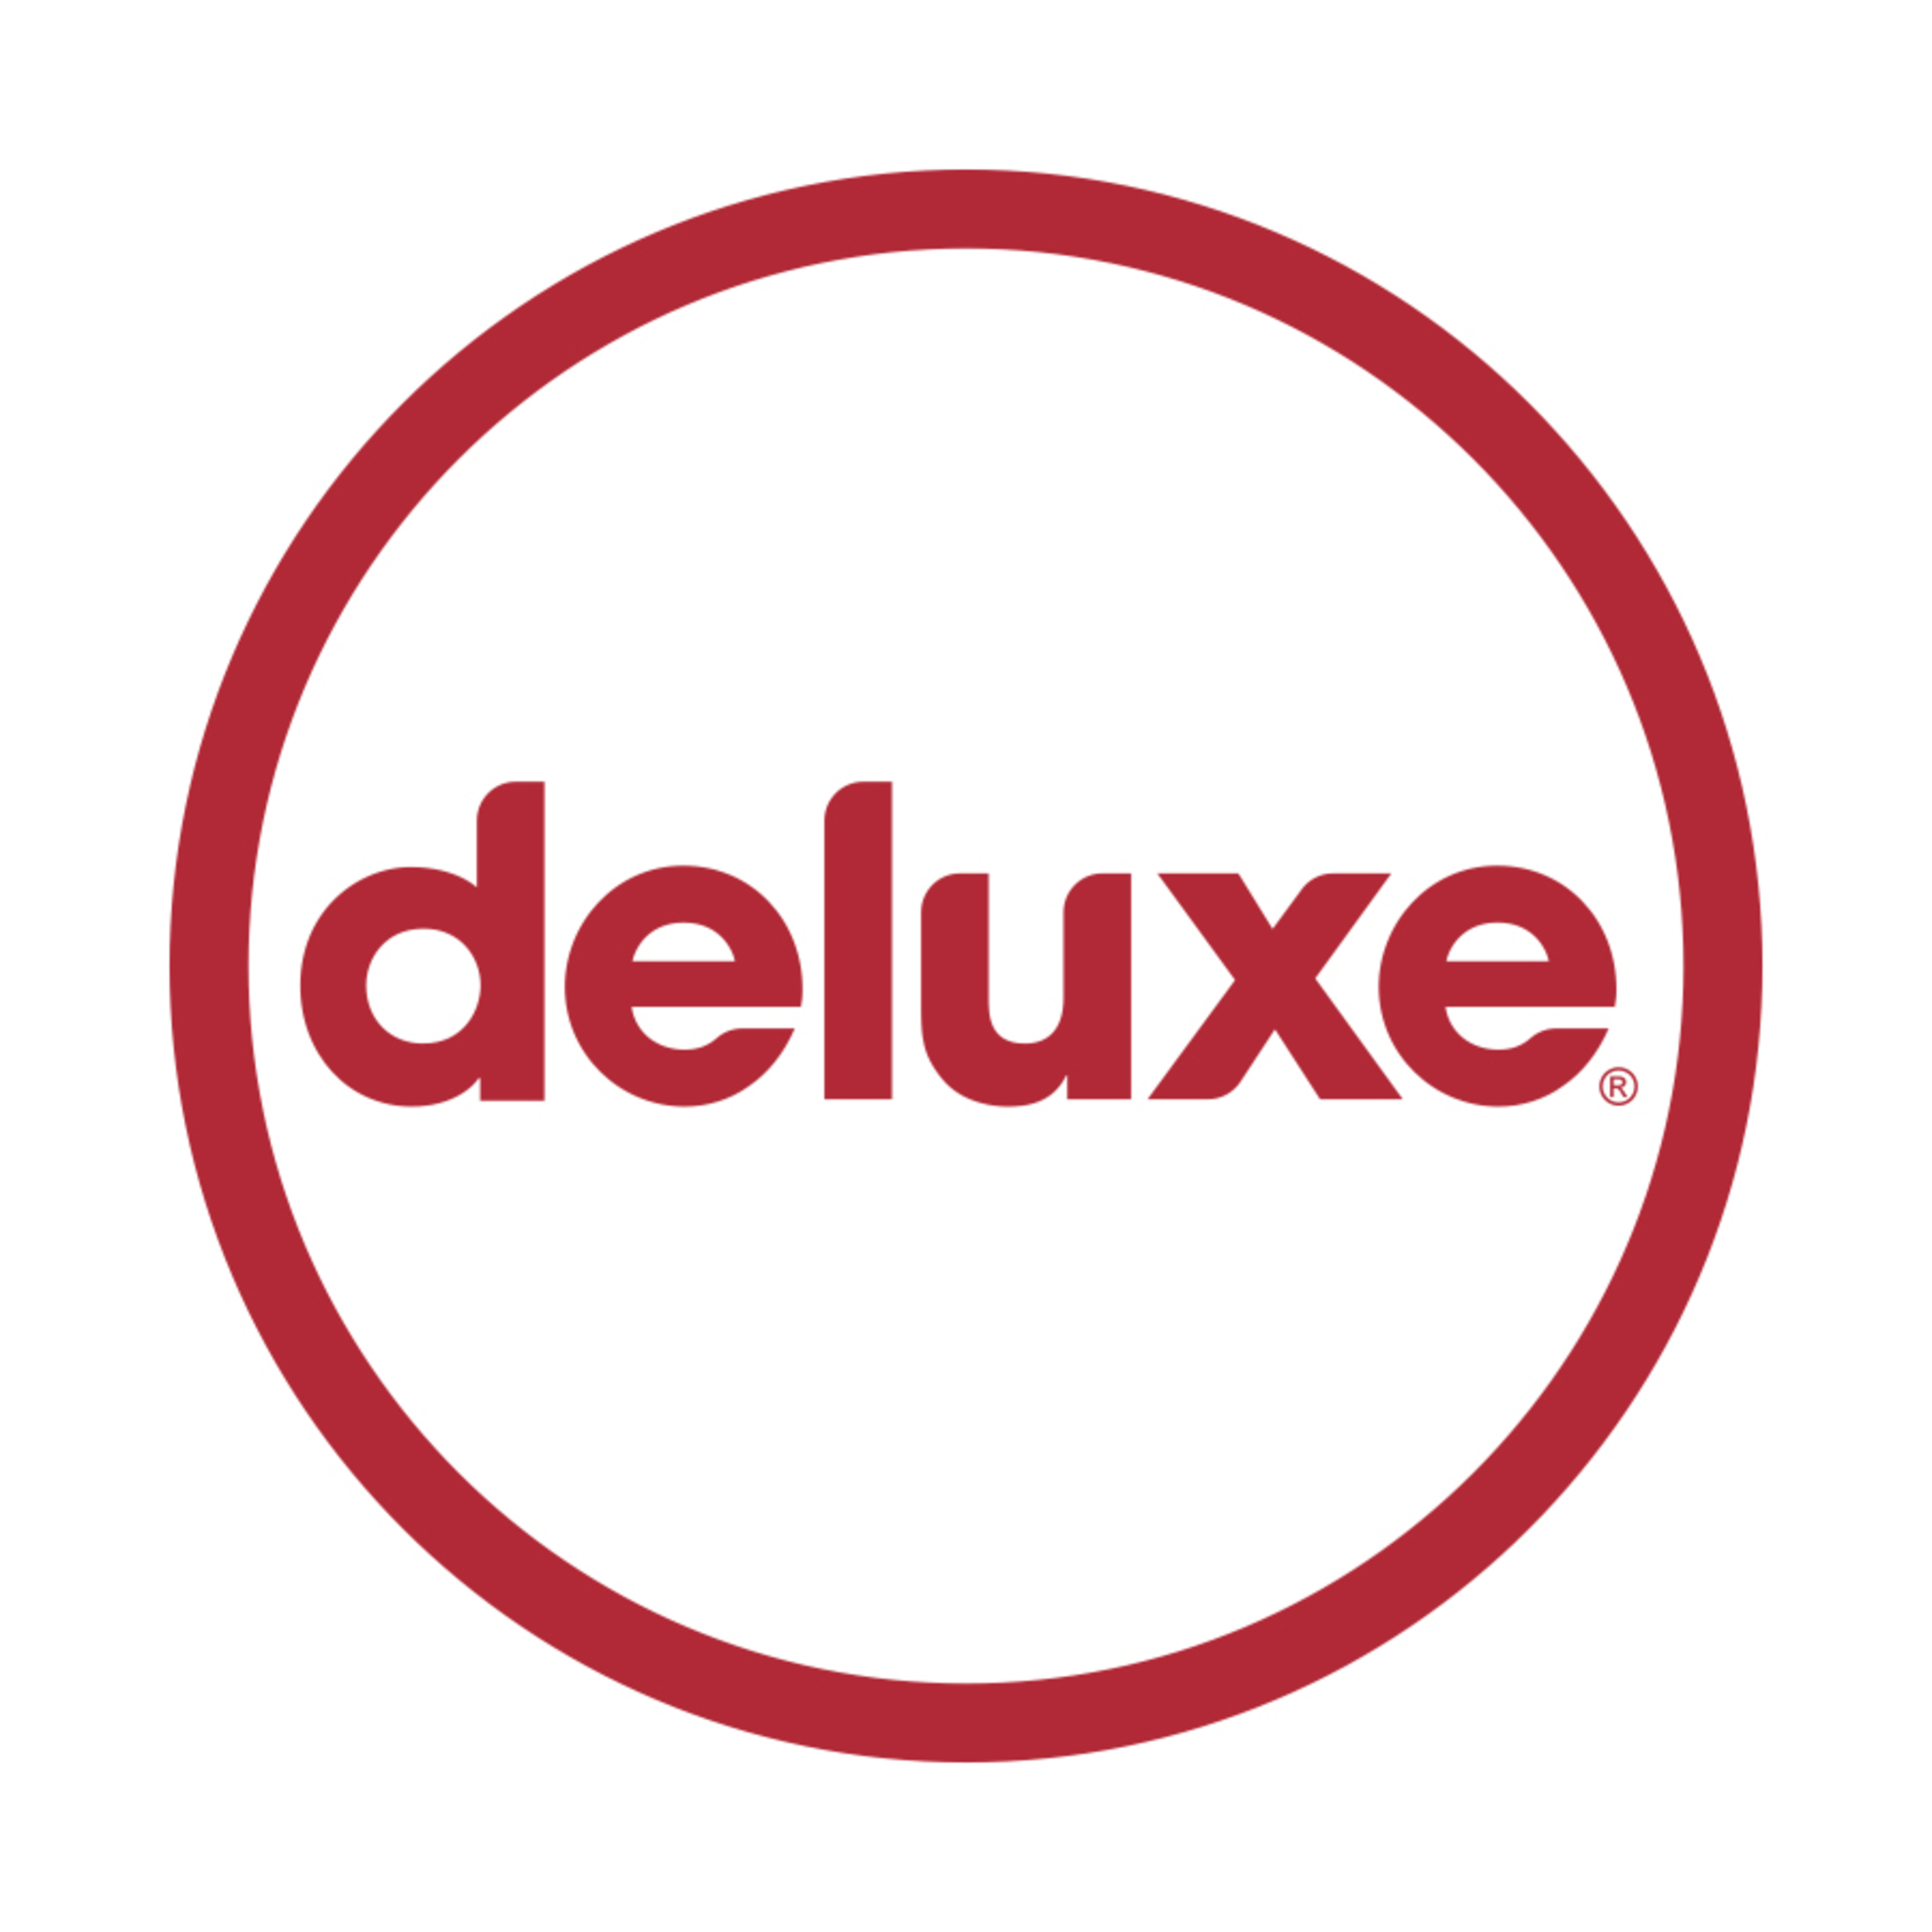 Mediasource is the industry's first fully redundant dual path technology. Deluxe Entertainment Adds to Portfolio of Digital Services ...